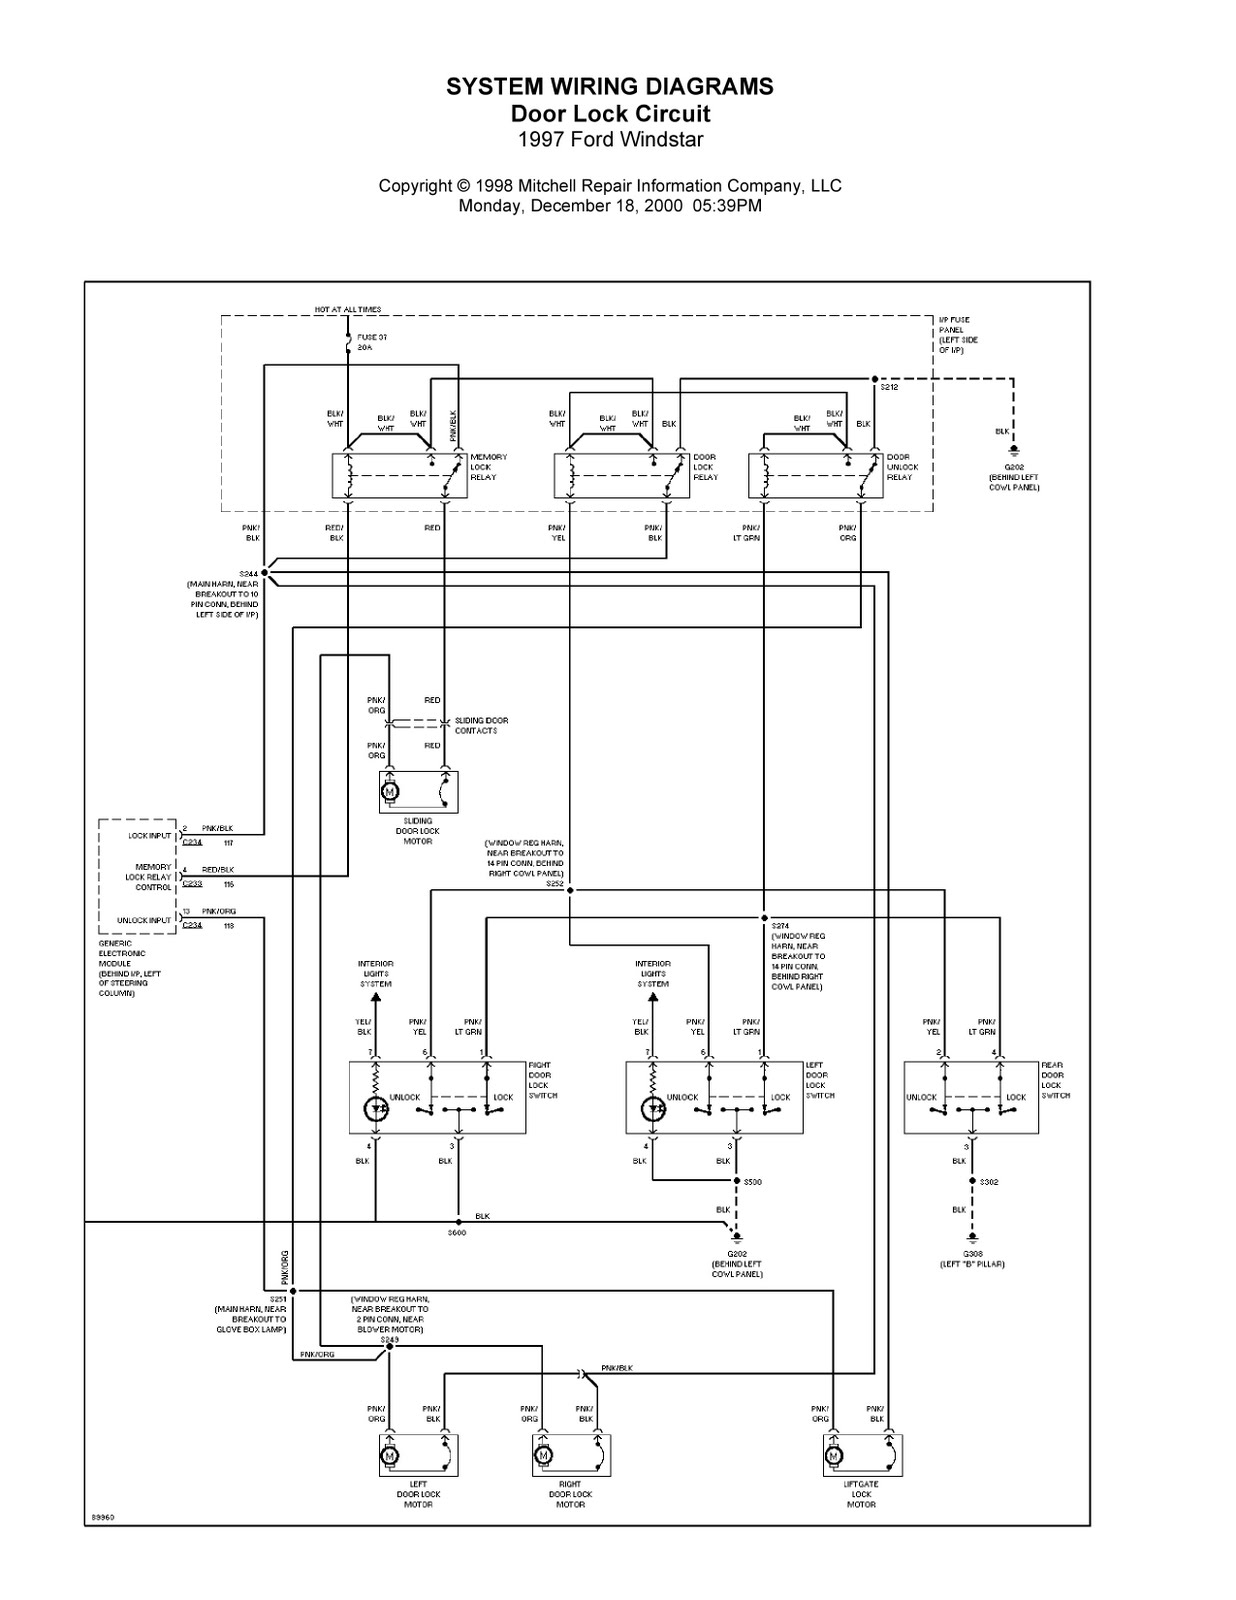 Complete System Wiring Diagrams 1997 Ford Windstar Fuse Diagram 03 For